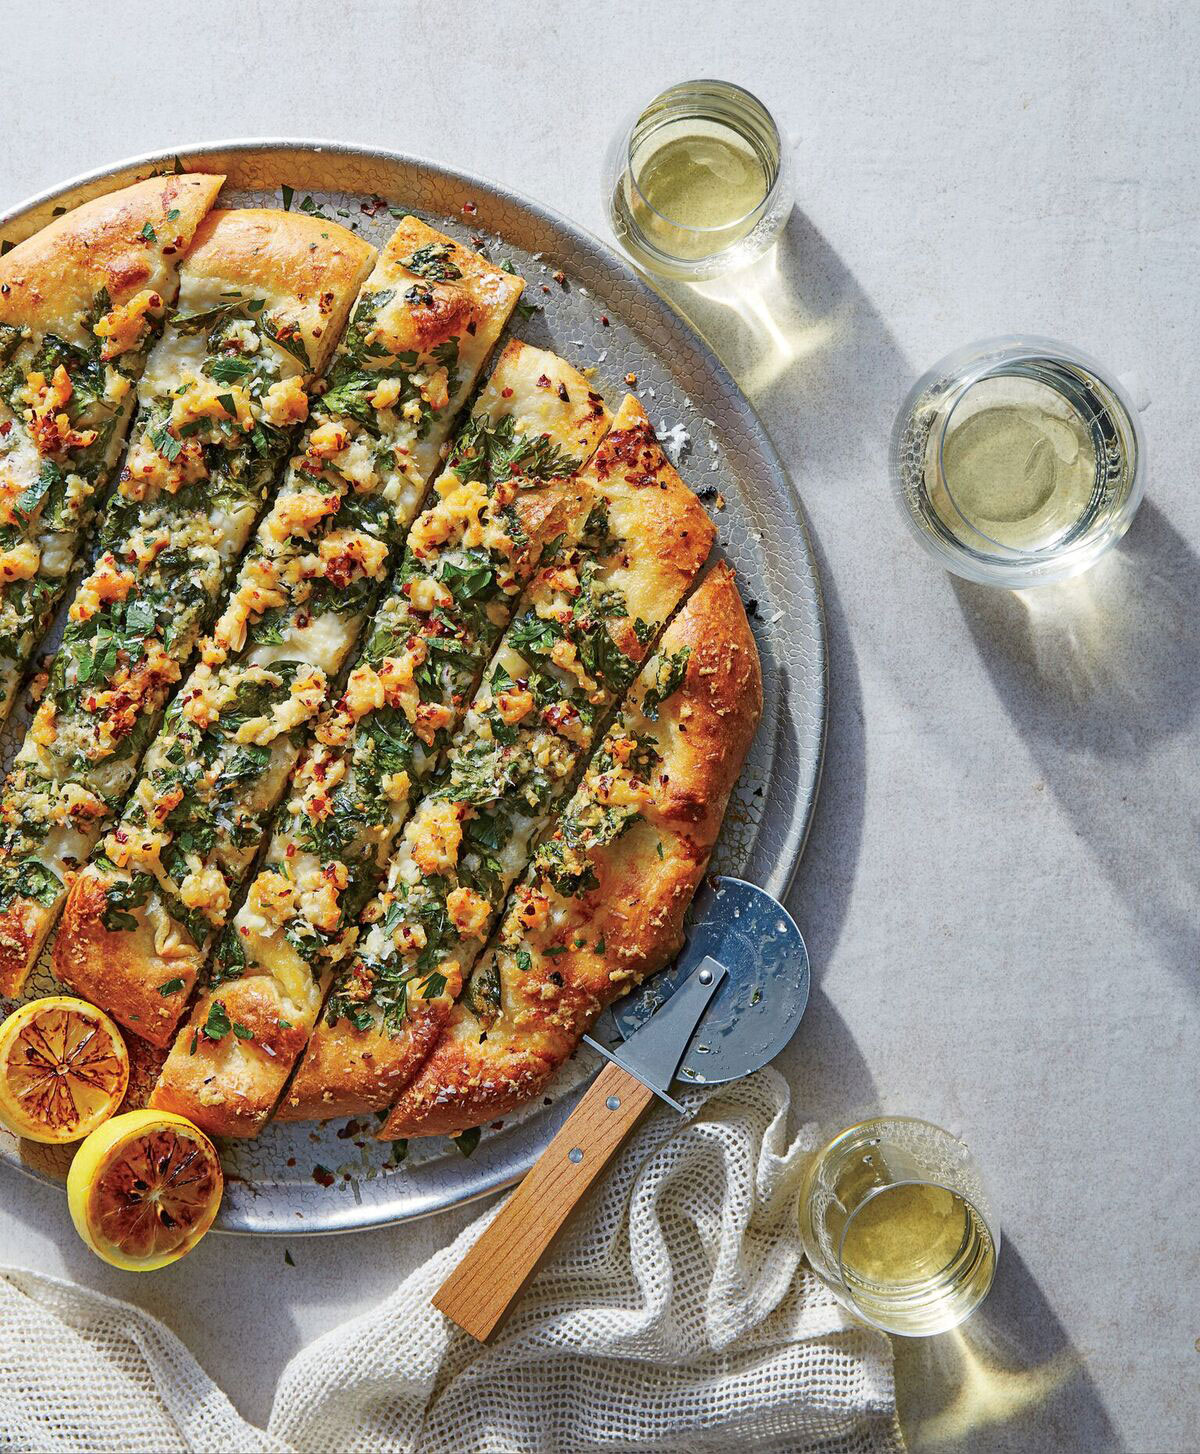 cl-Chopped-Clam Pizza